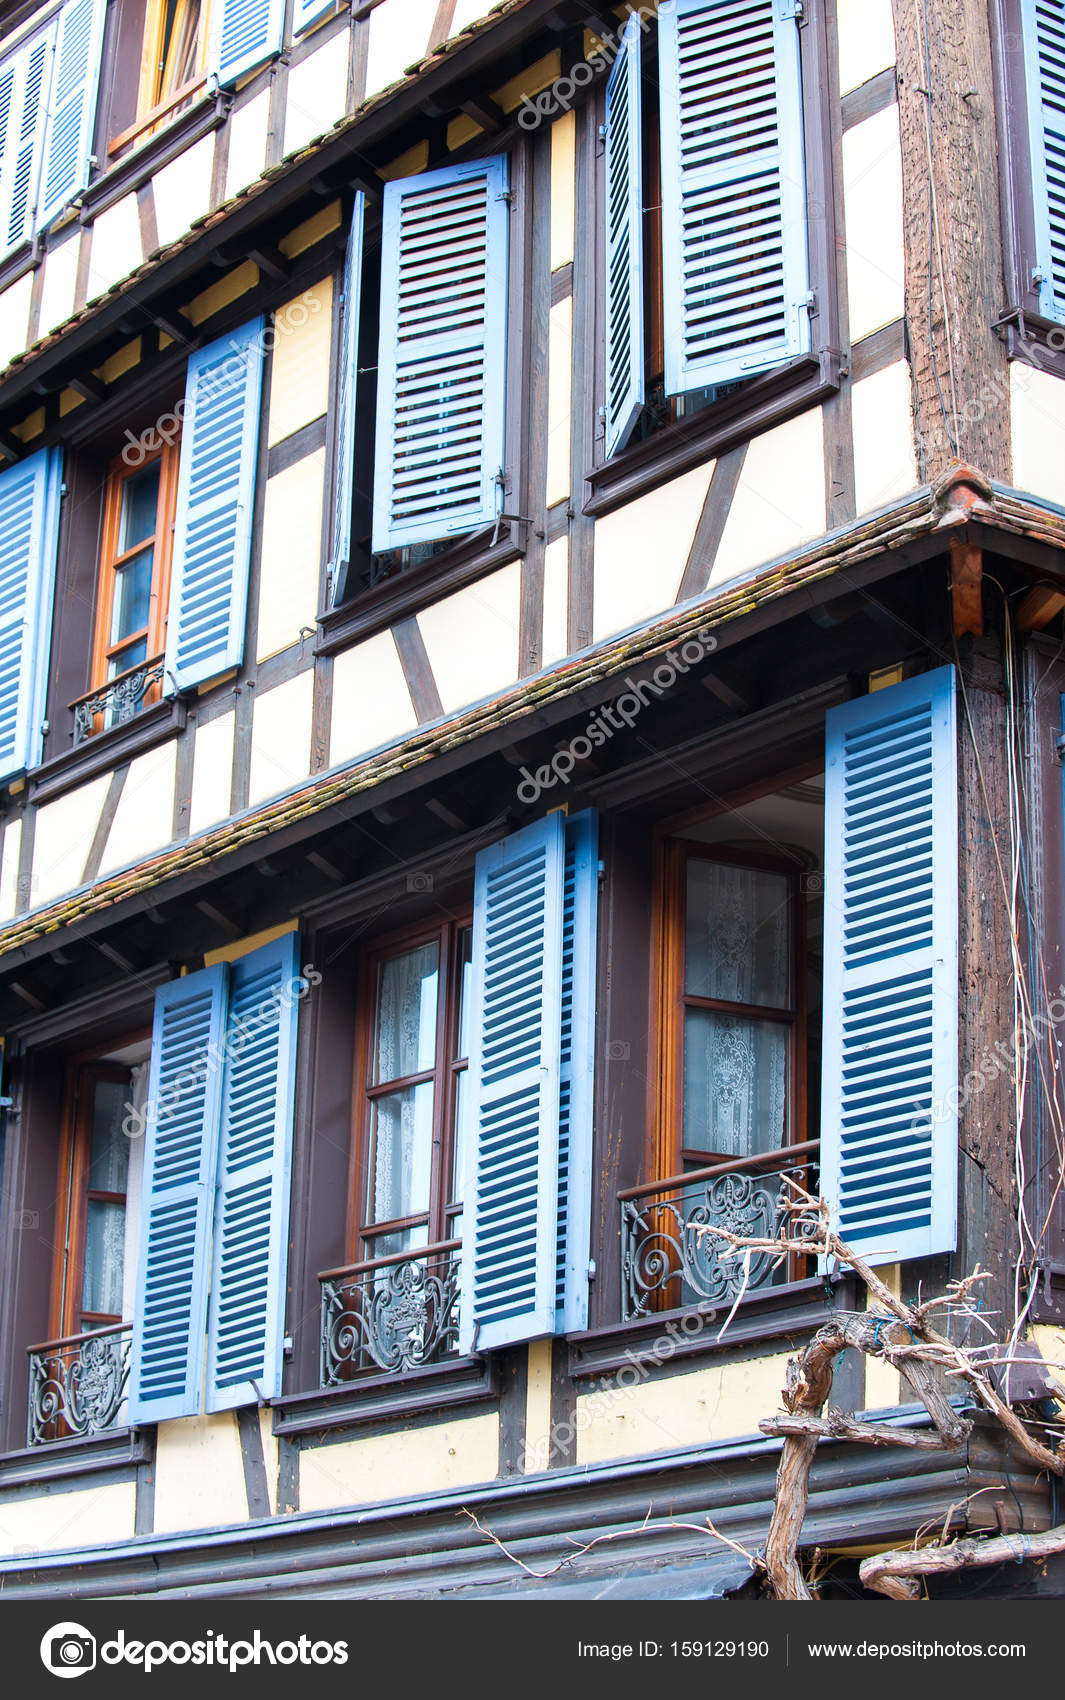 French Provencal Style Windows With Blue Wooden Shutters